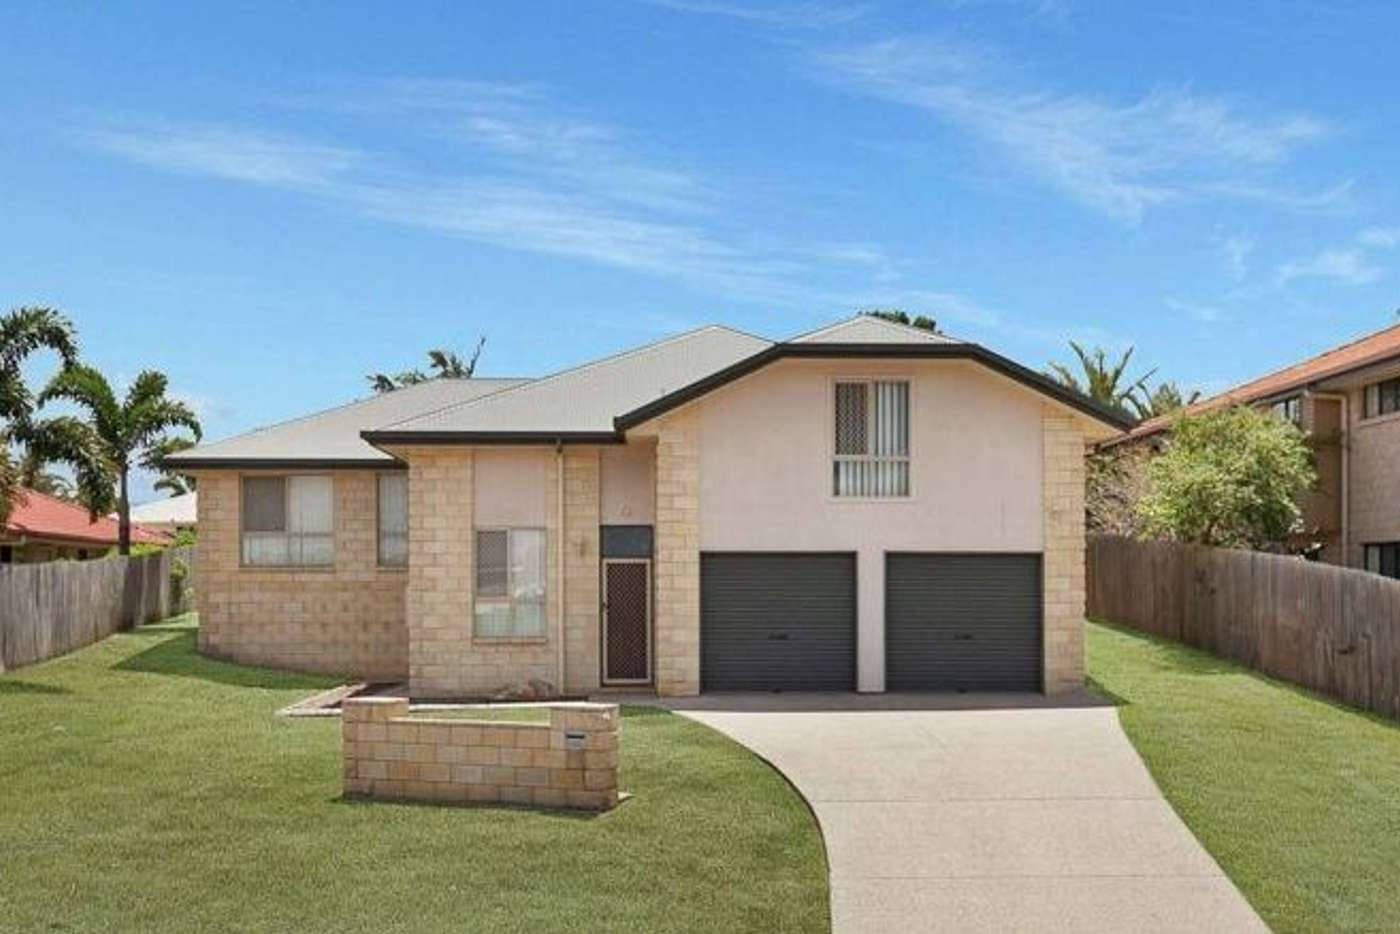 Main view of Homely house listing, 17 Arlington Court, Kawungan QLD 4655